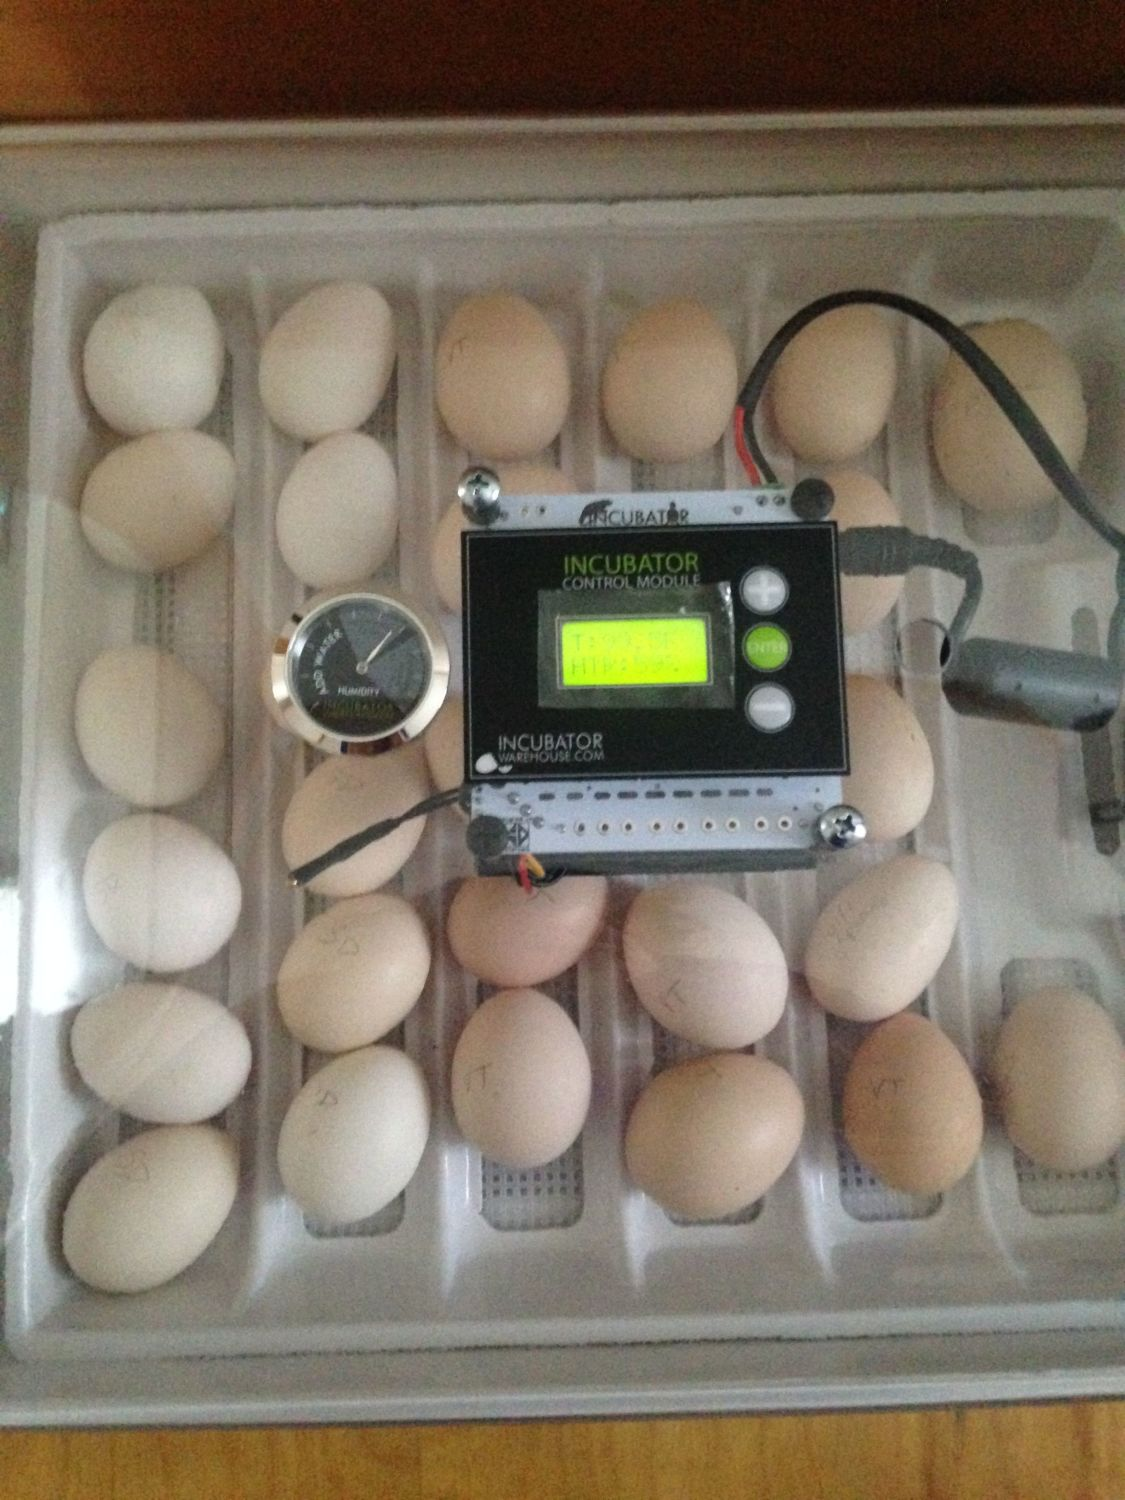 FishMtFarm's photos in Need advice on egg placement in incubator